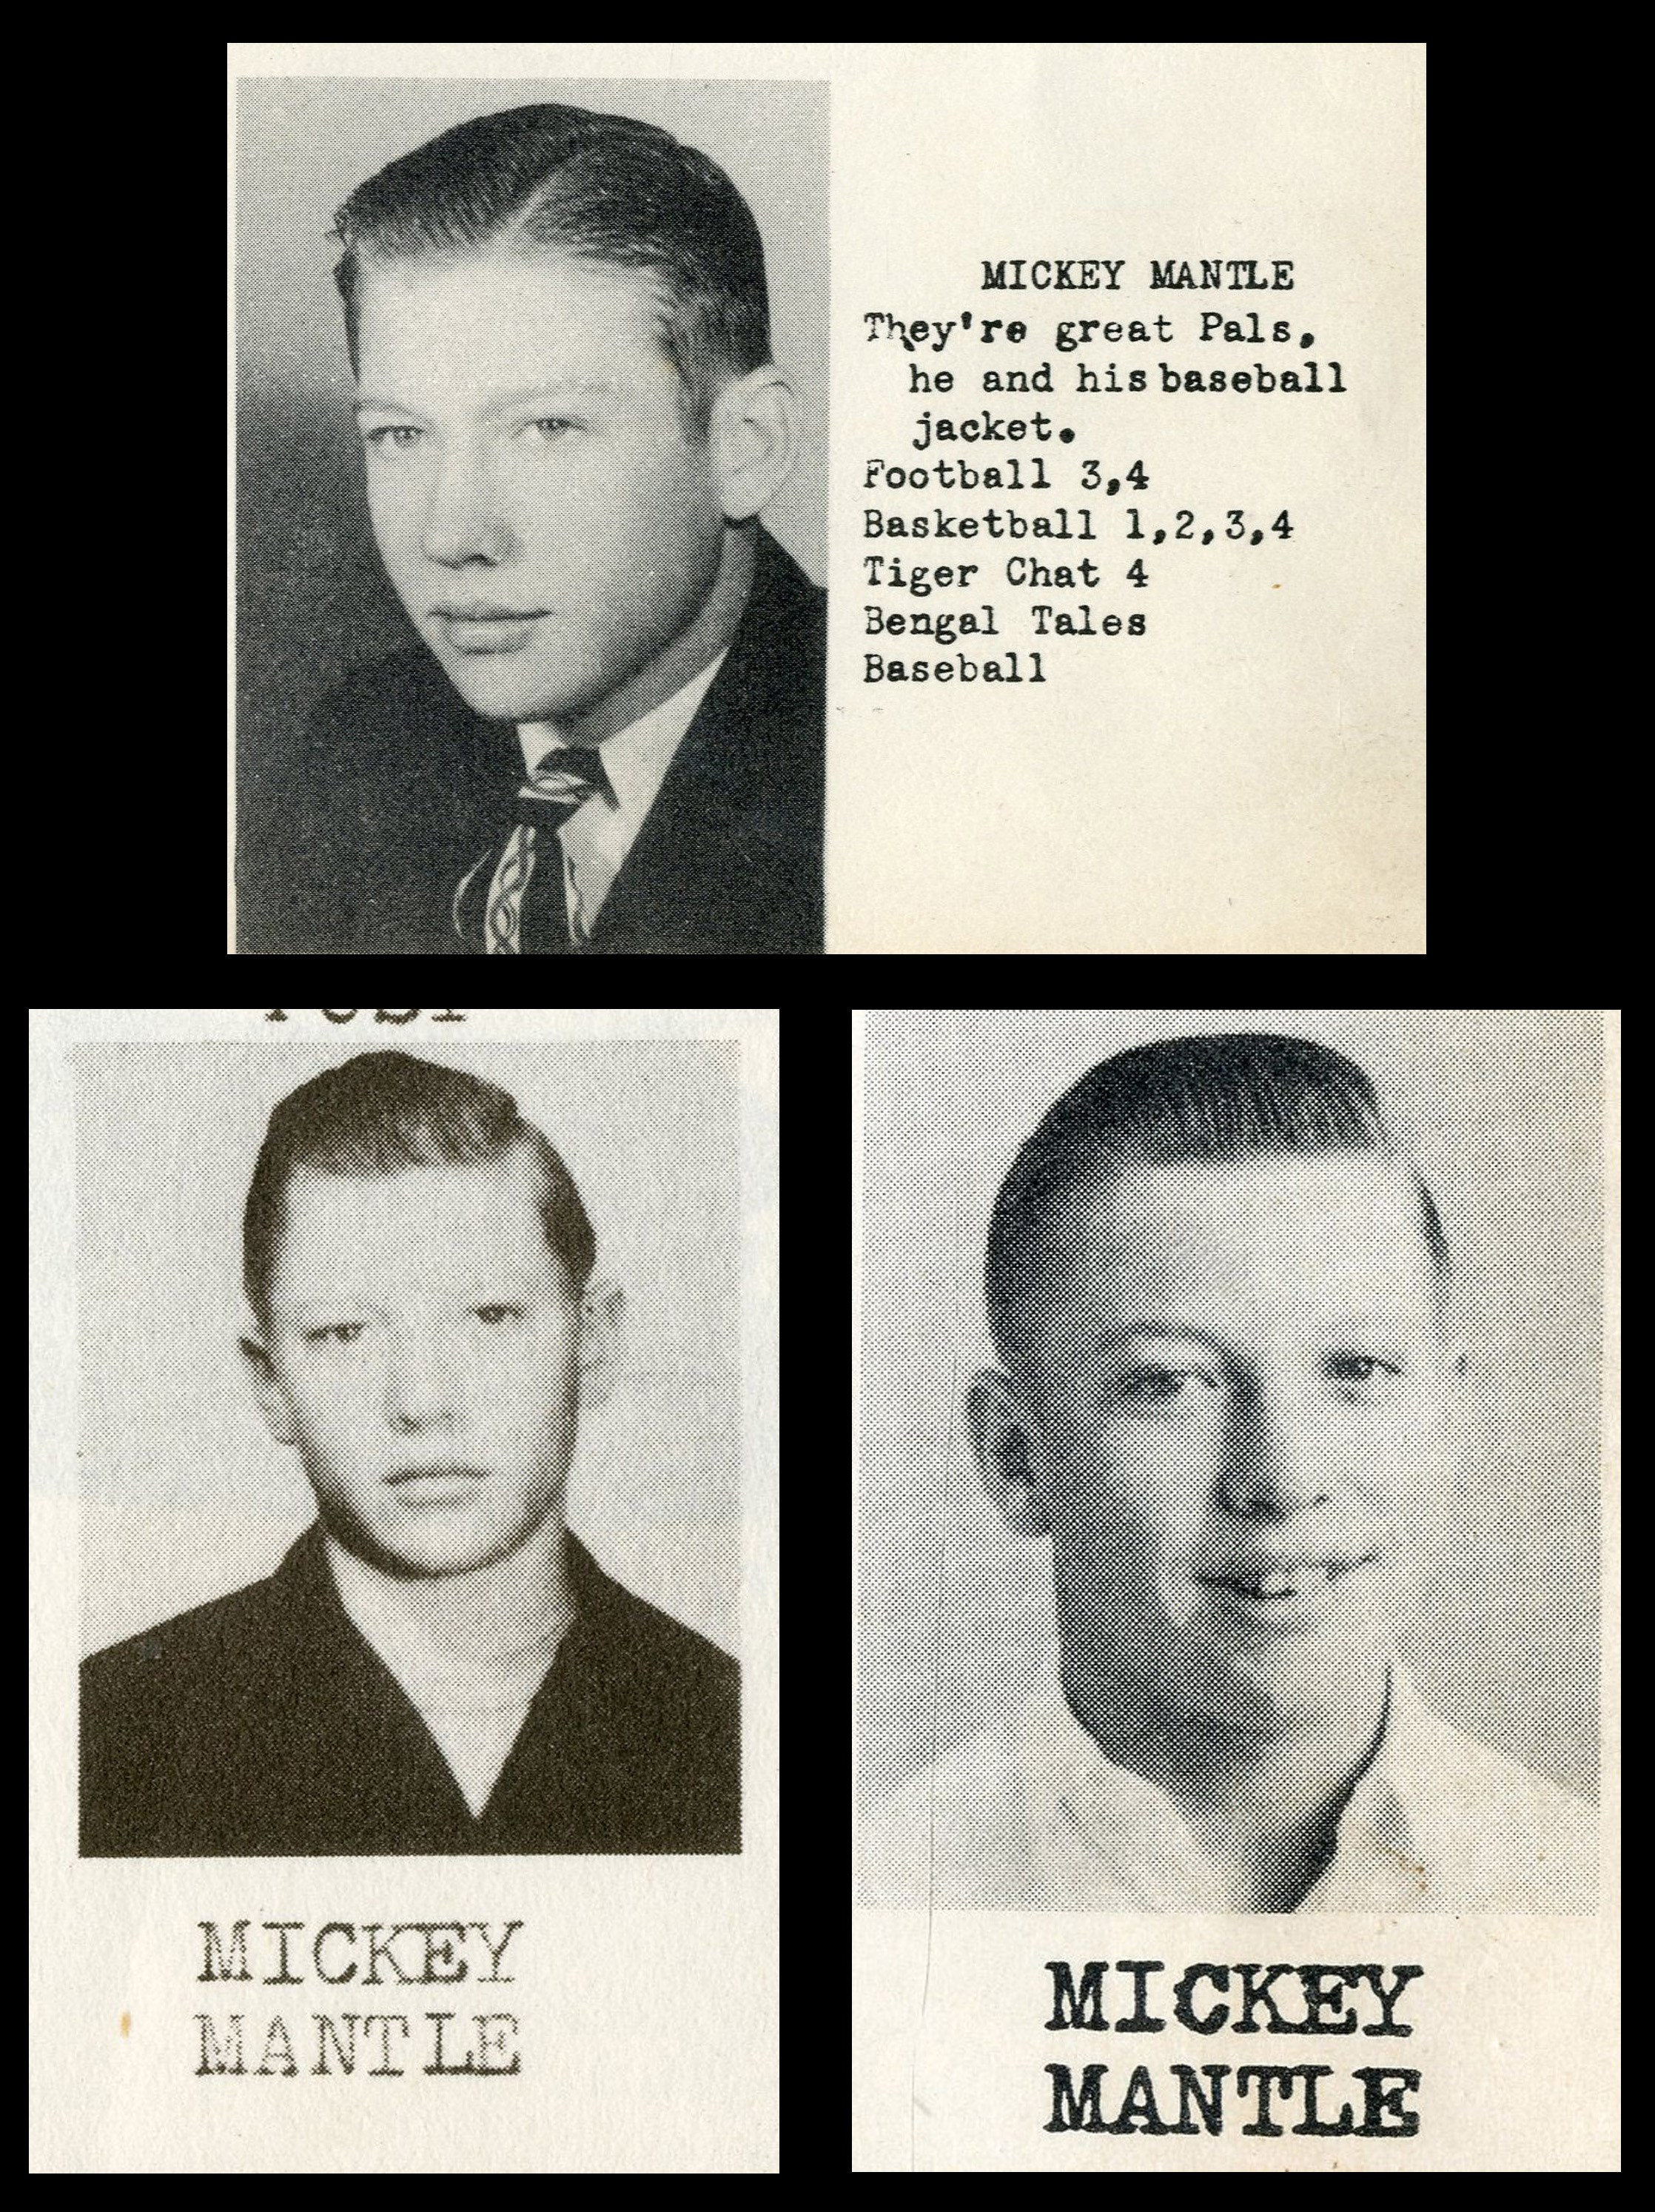 1947-49 Mickey Mantle High School Yearbook Near Complete Set (3)